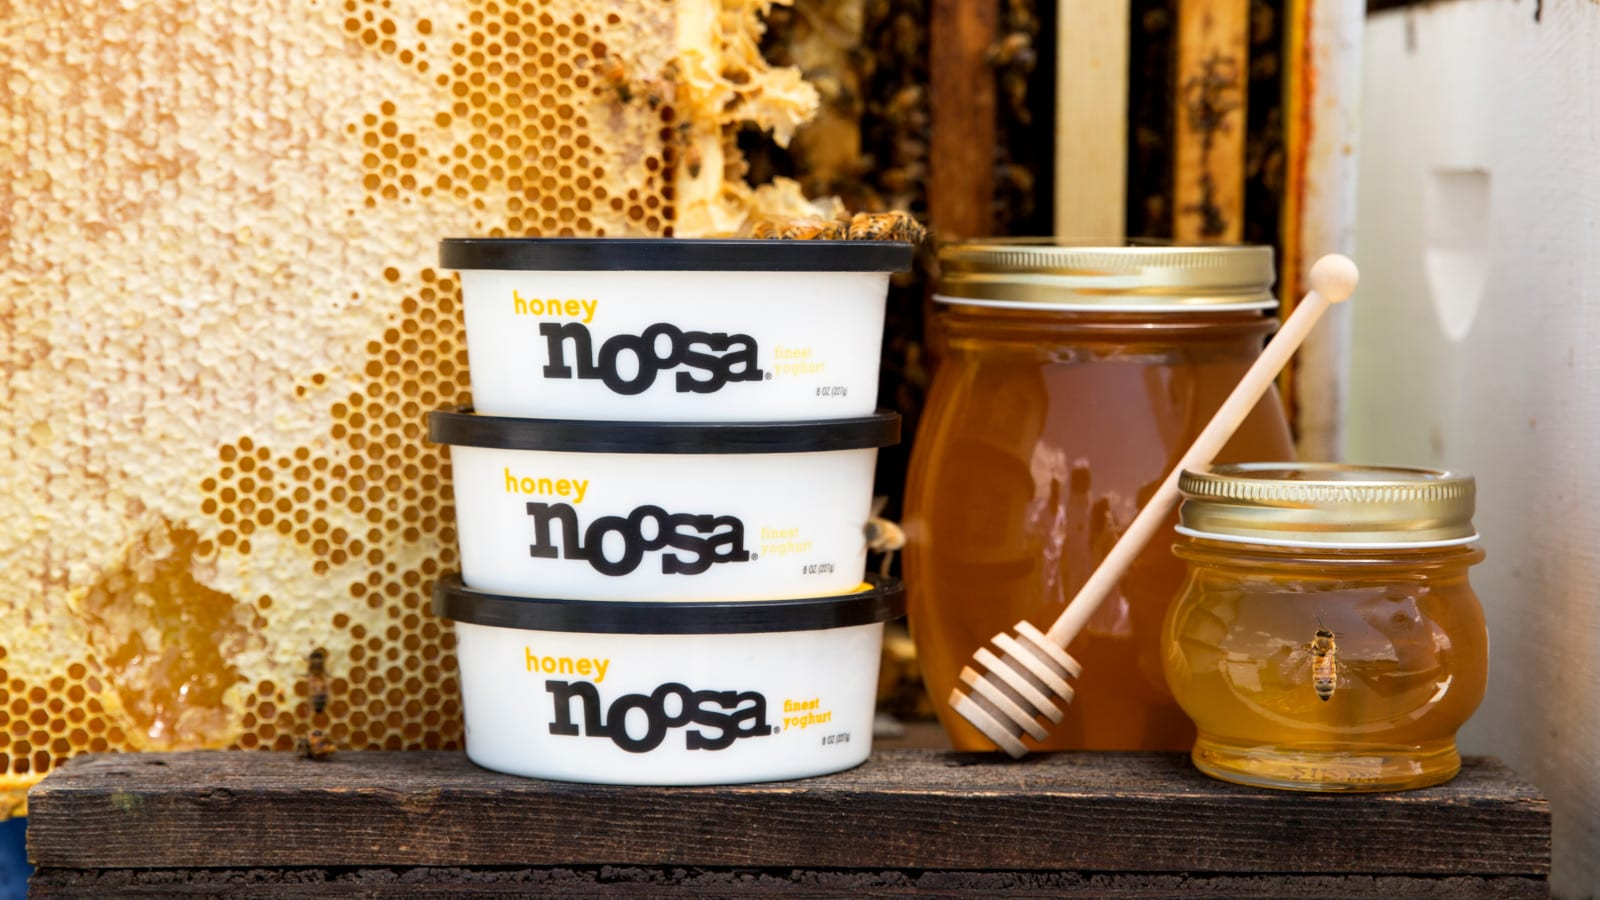 Noosa Yoghurt Honey Comb